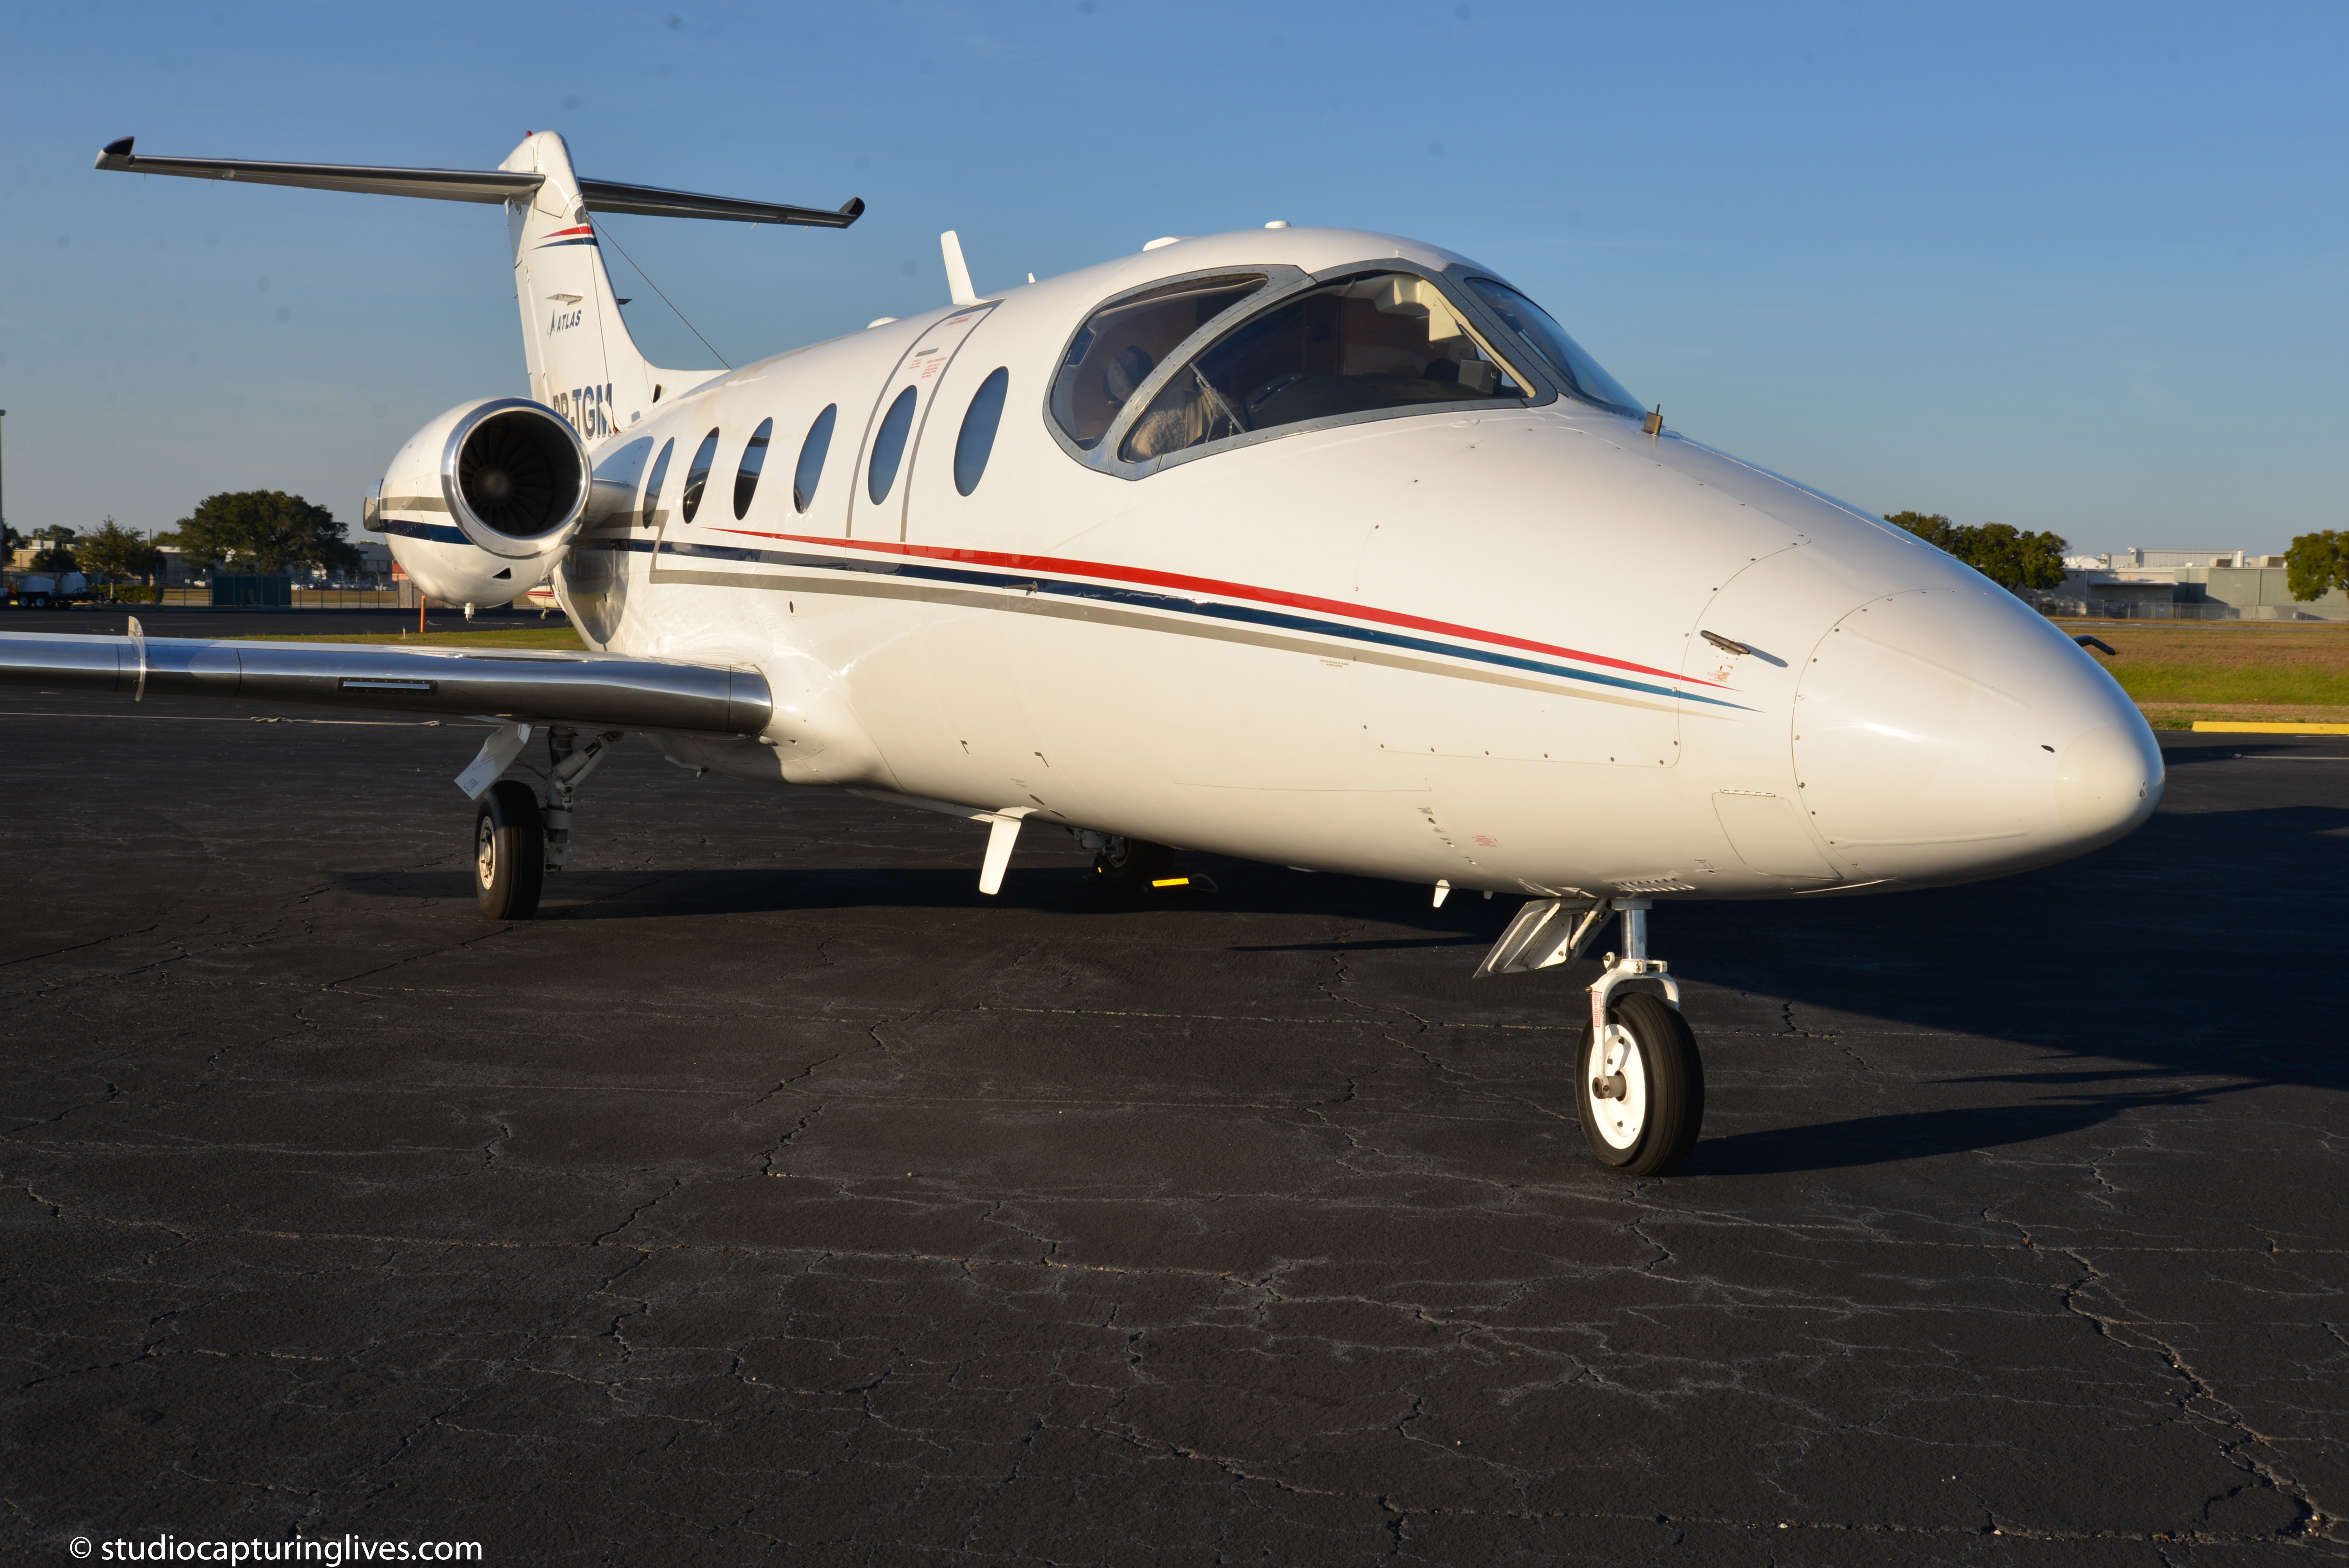 Aircraft Listing - Beechjet 400A listed for sale